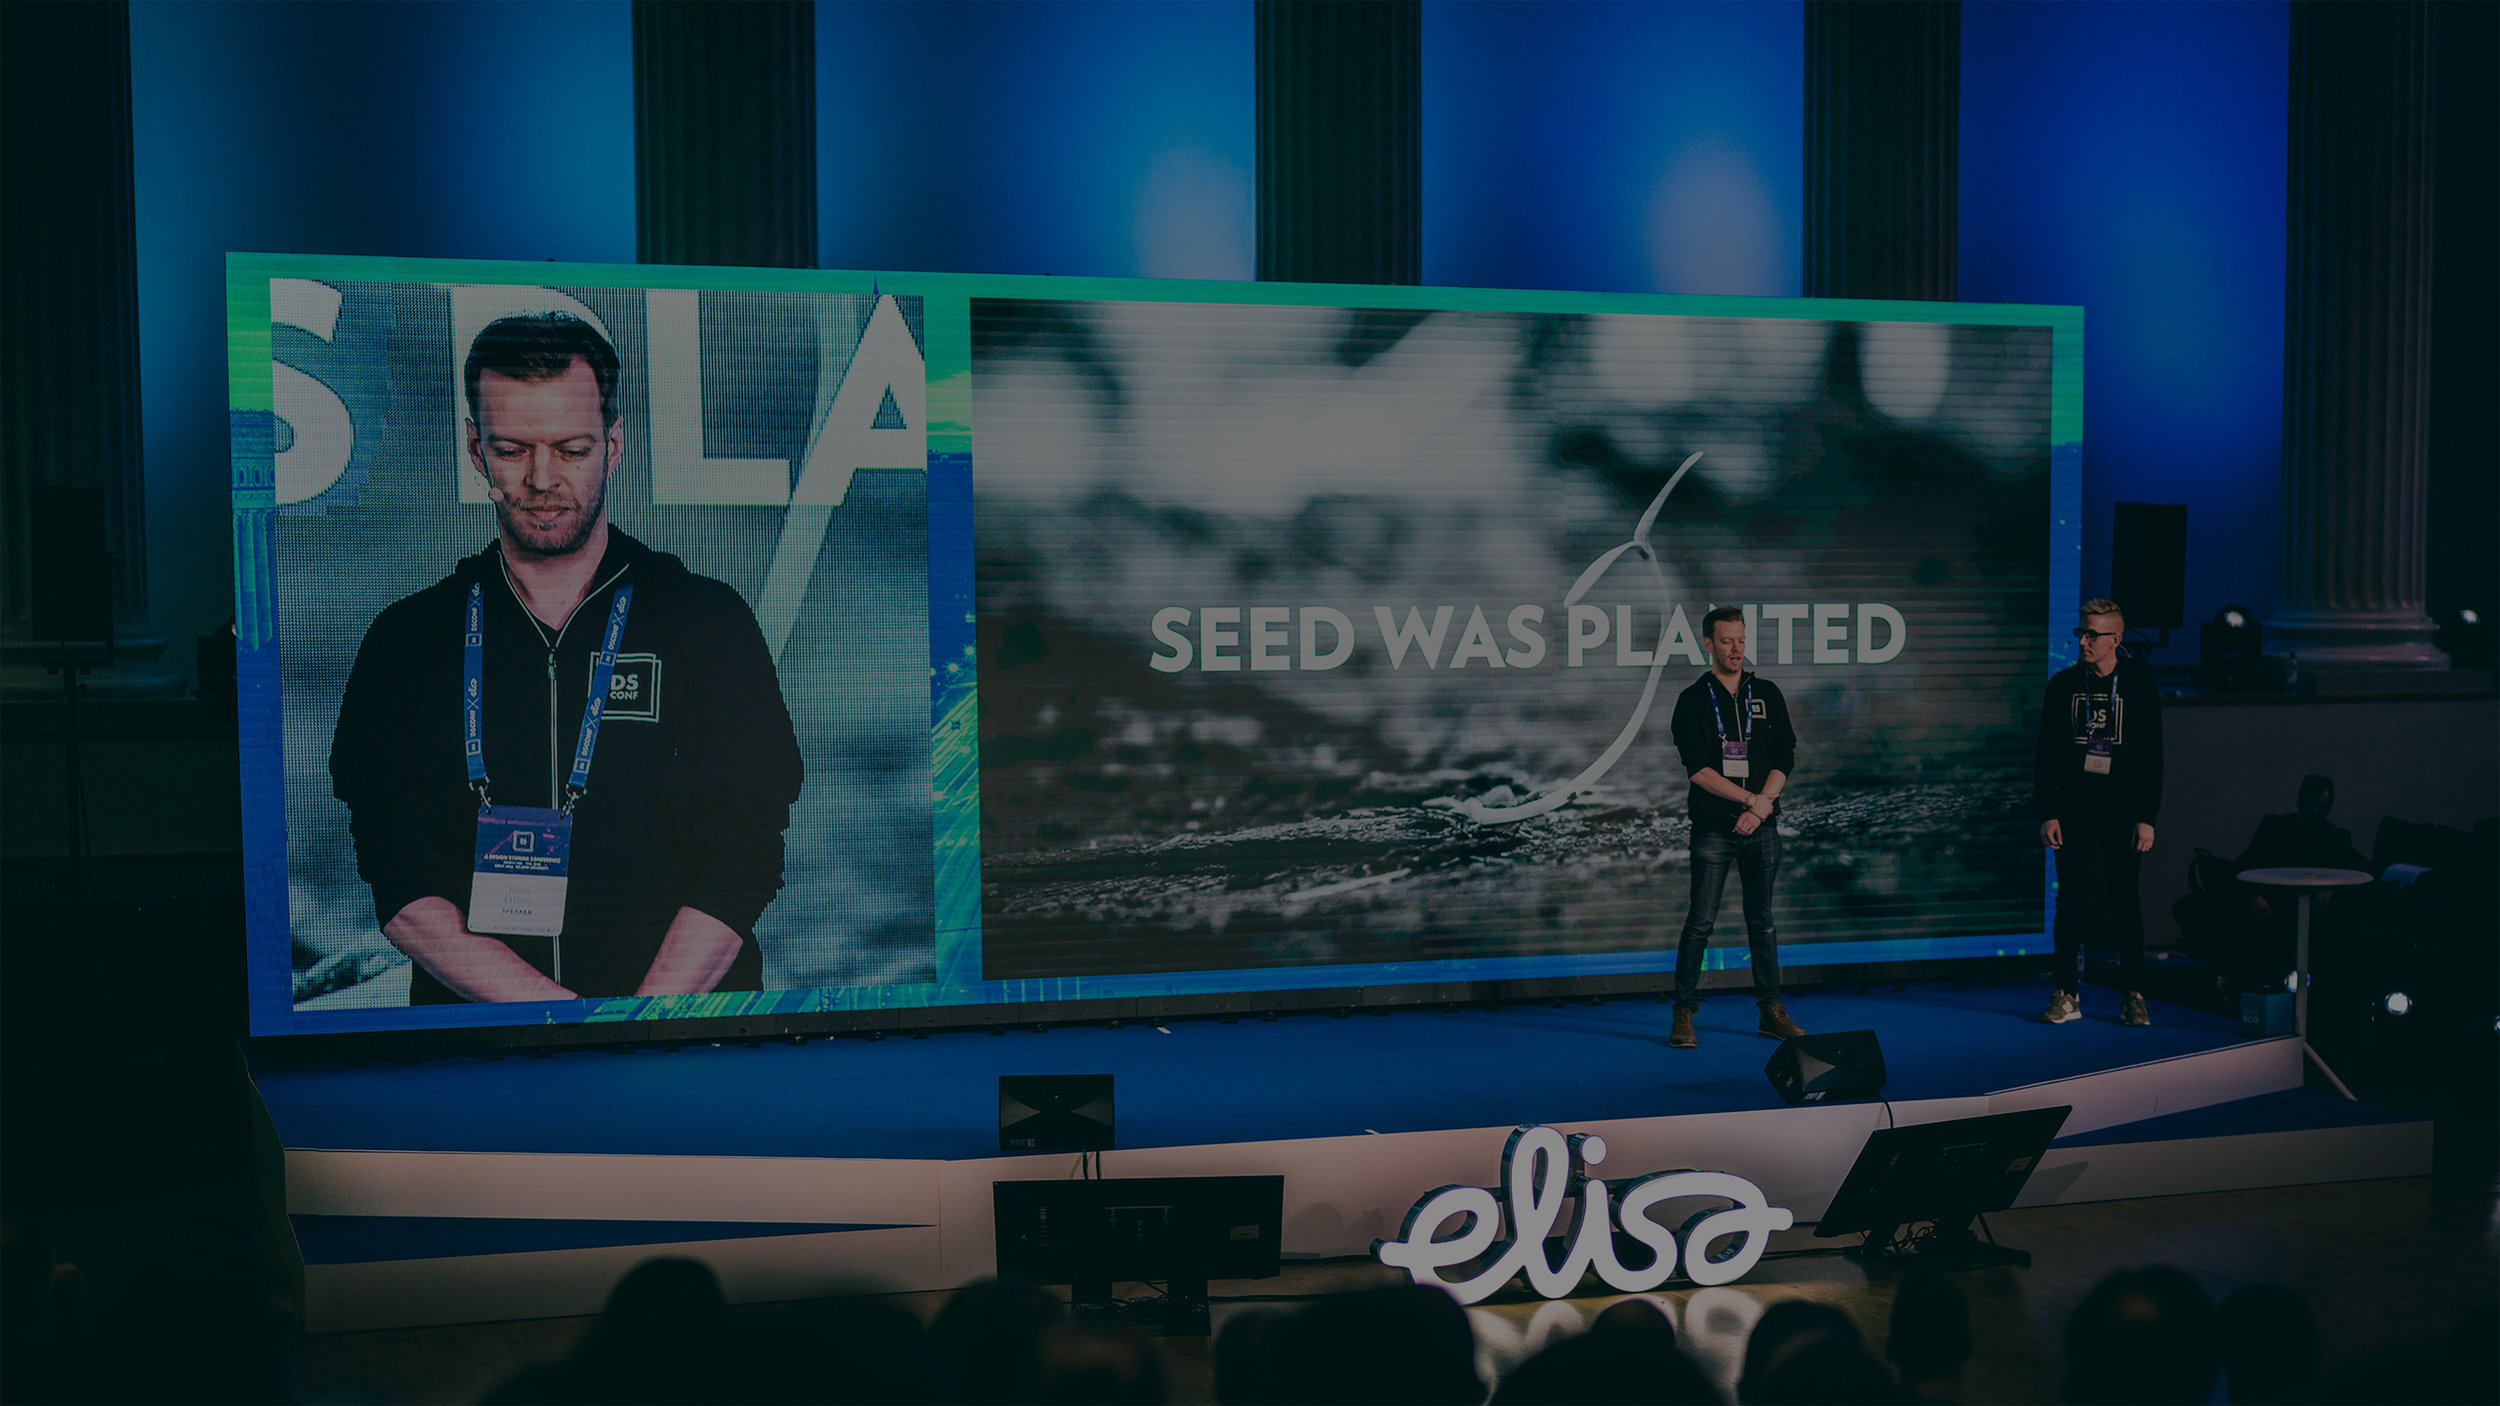 Elisa Design System Co-created with Intergalactico - We had the pleasure to be a part of the Design Systems Conference in Helsinki on 14th March 2018, and we're happy to share our thoughts on it!